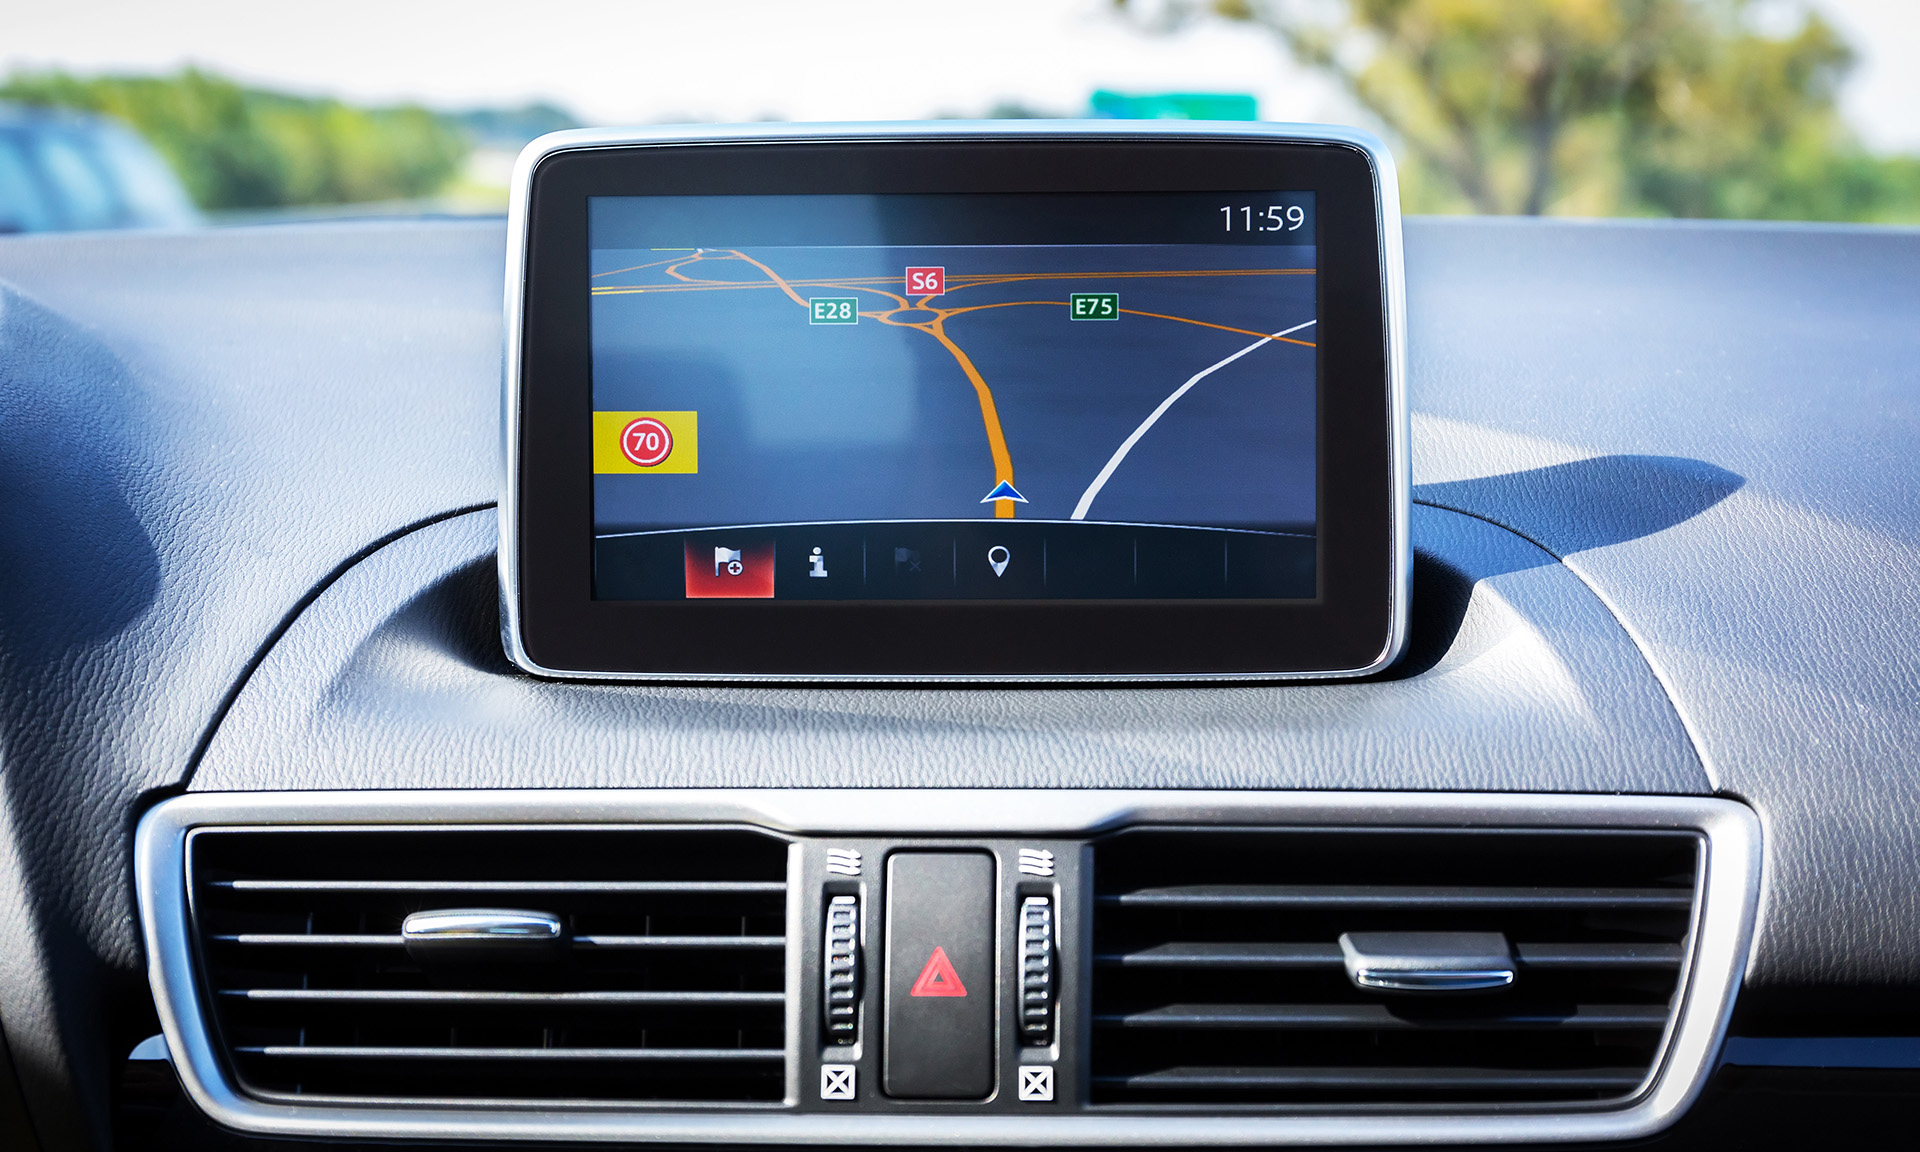 Built In Sat Nav Map Updates Cost Up To 164 Which News